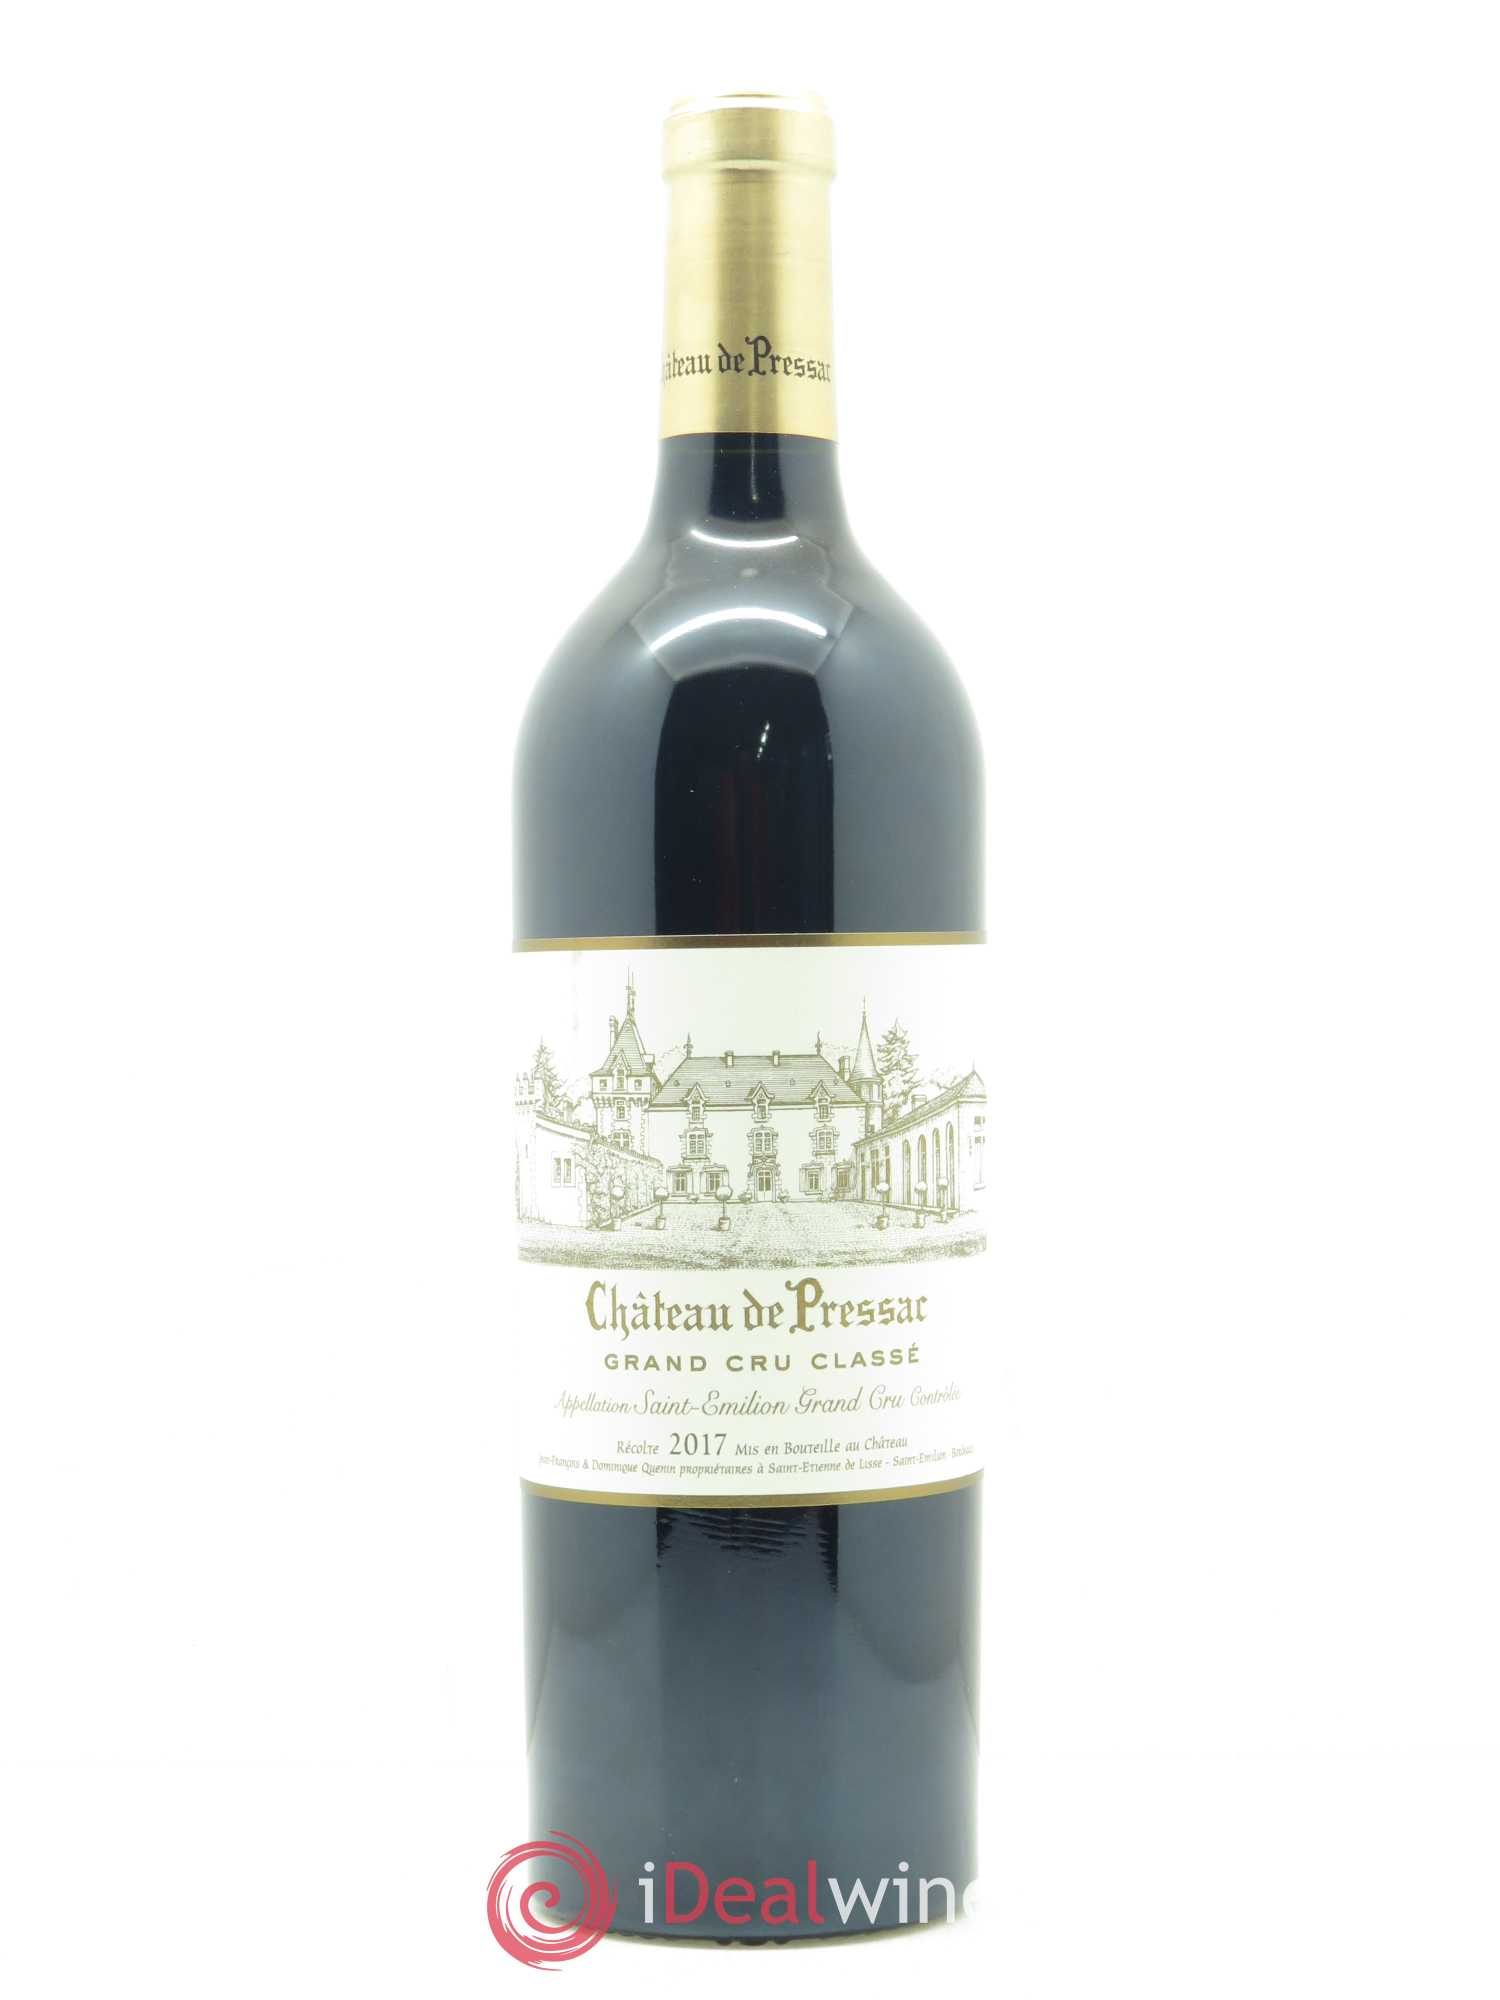 Château de Pressac Grand Cru Classé  2017 - Lot of 1 Bottle